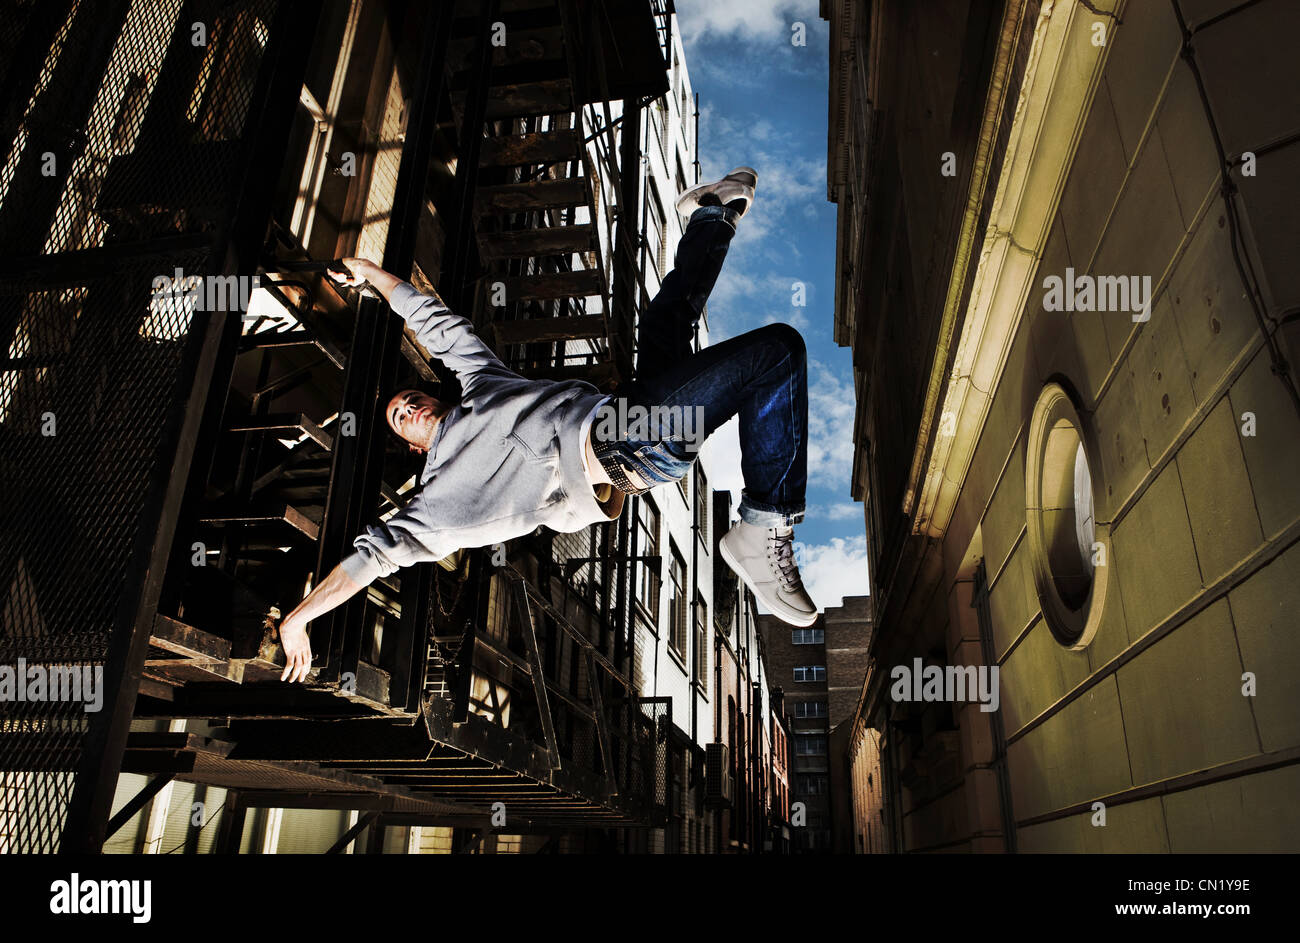 Young man breakdancing - Stock Image